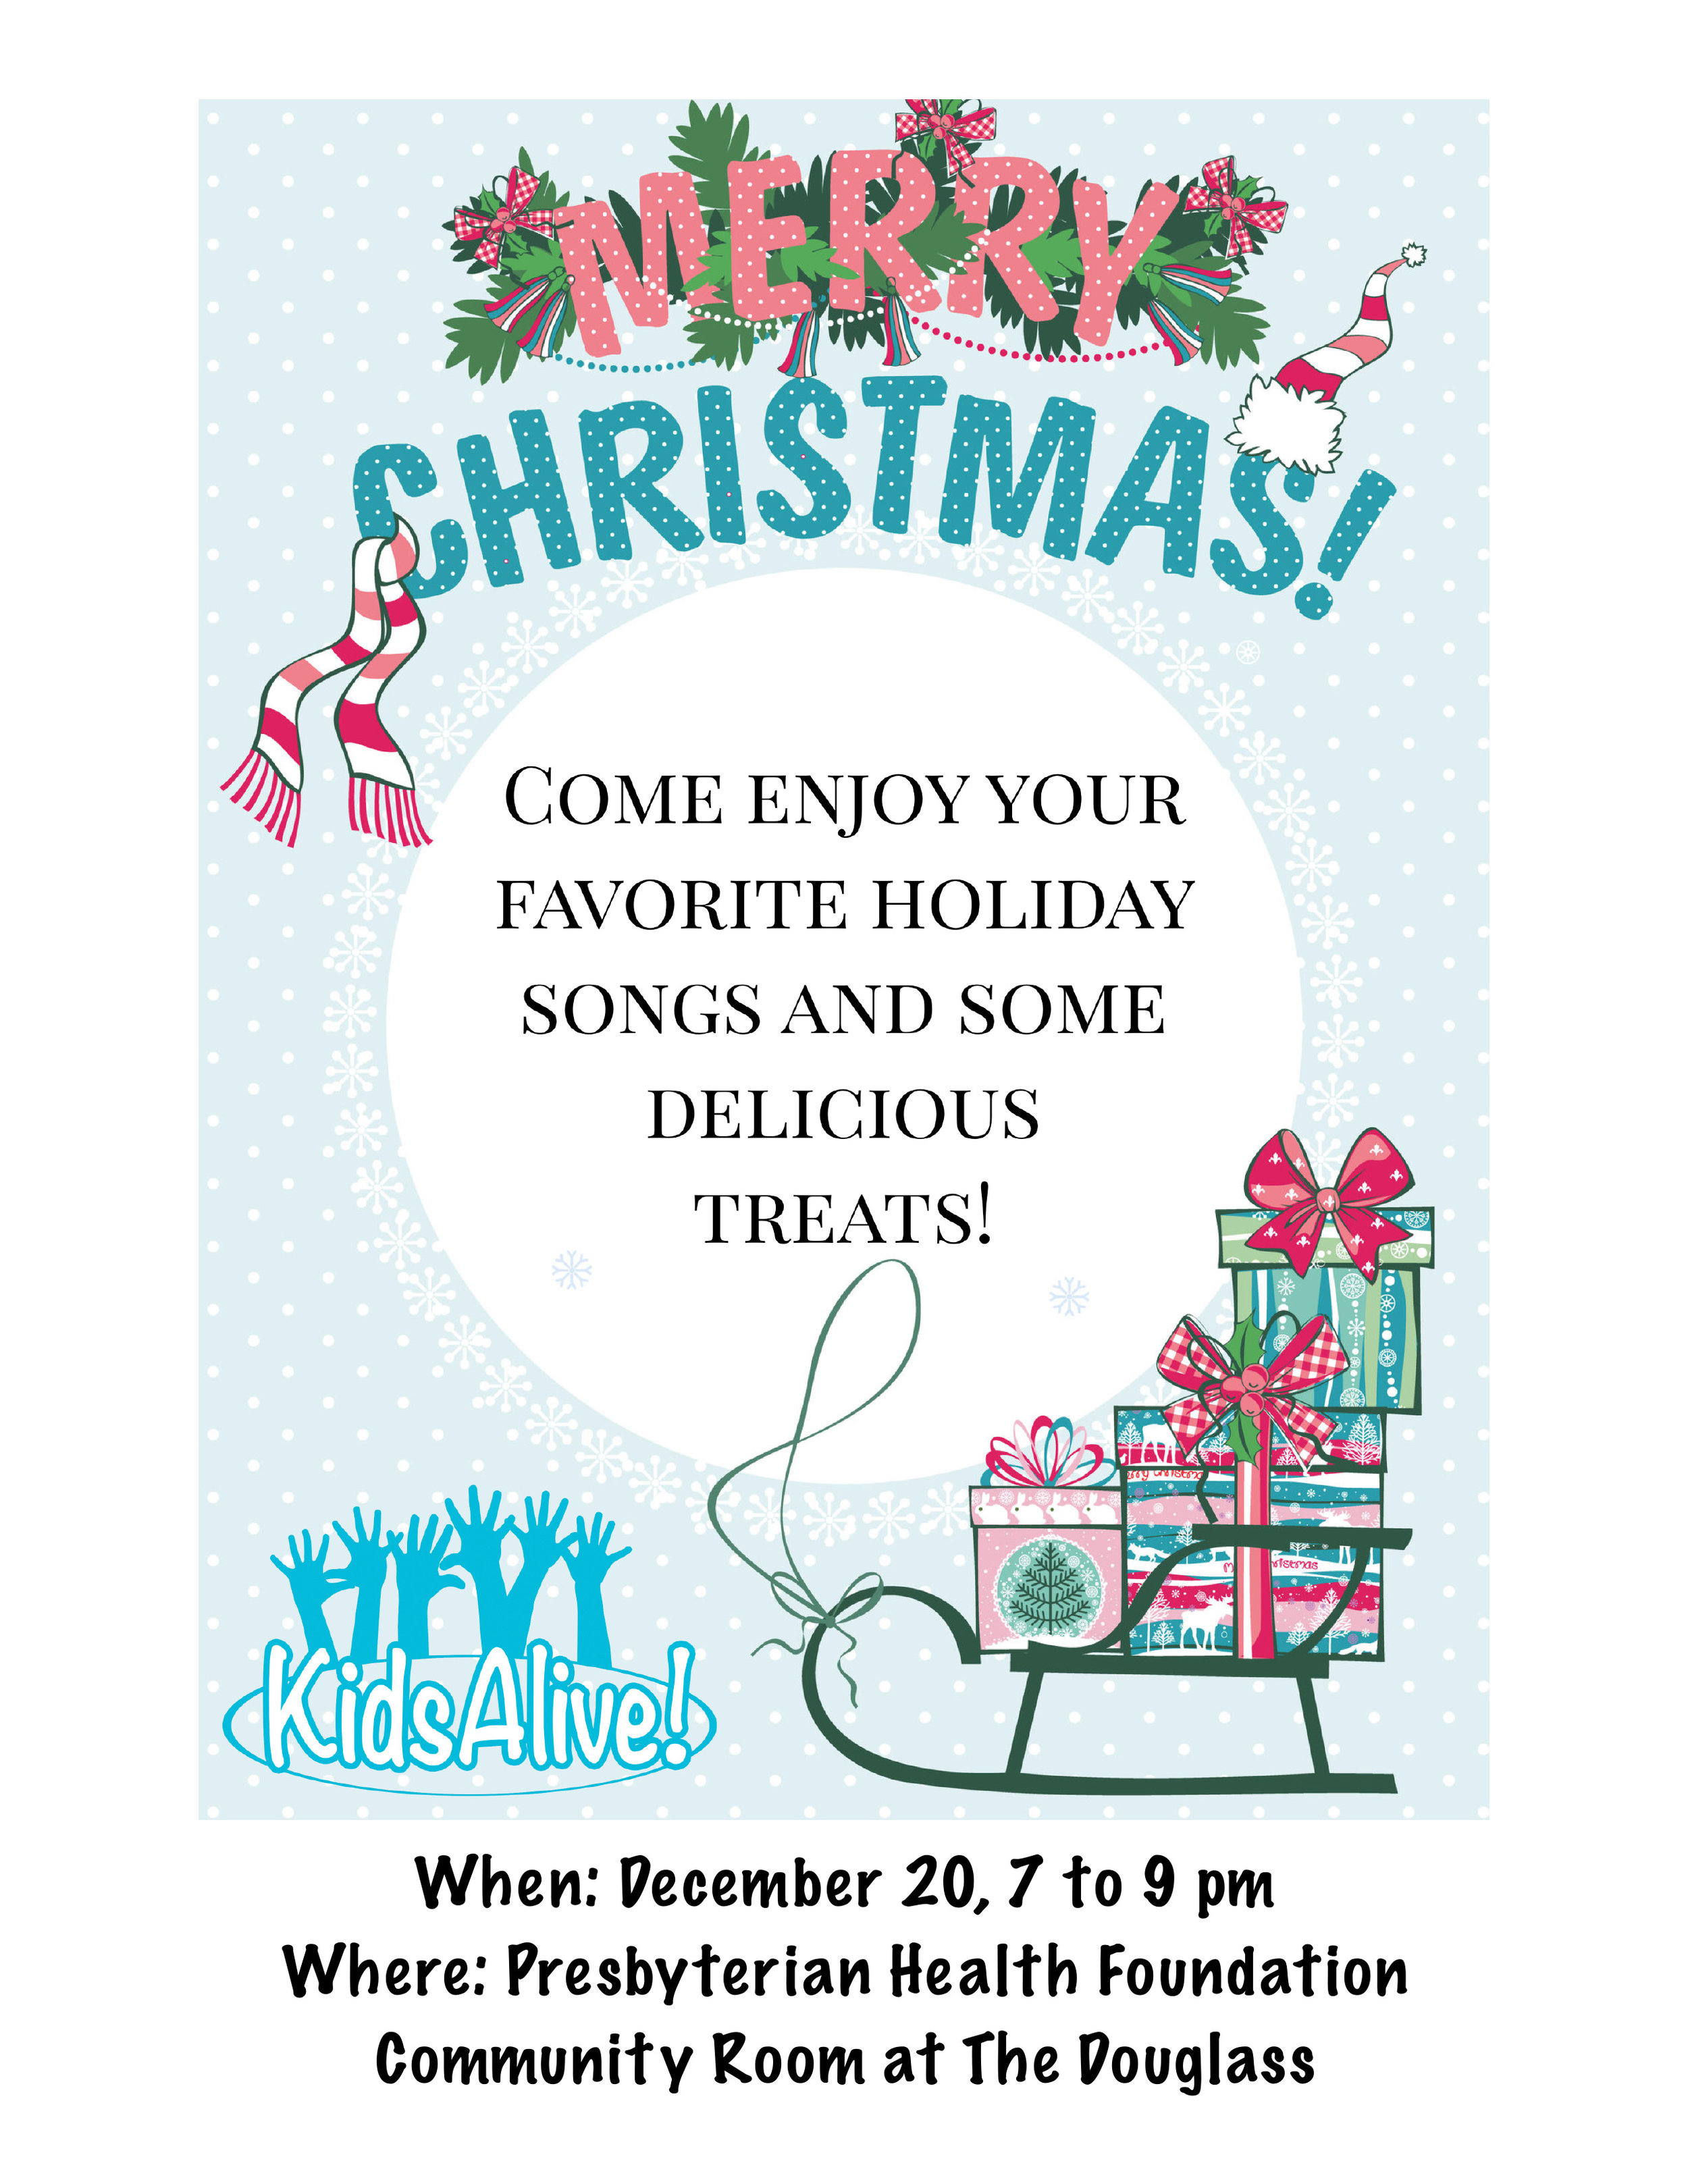 KidsAlive! Christmas Cabaret - Free Admission - Dec. 20th, 7-9 pmKidsAlive! presents their Christmas Cabaret show at the Presbyterian Health Foundation Community Room at The Douglass at Page Woodson! Listen to your favorite holiday music while enjoying delicious treats!